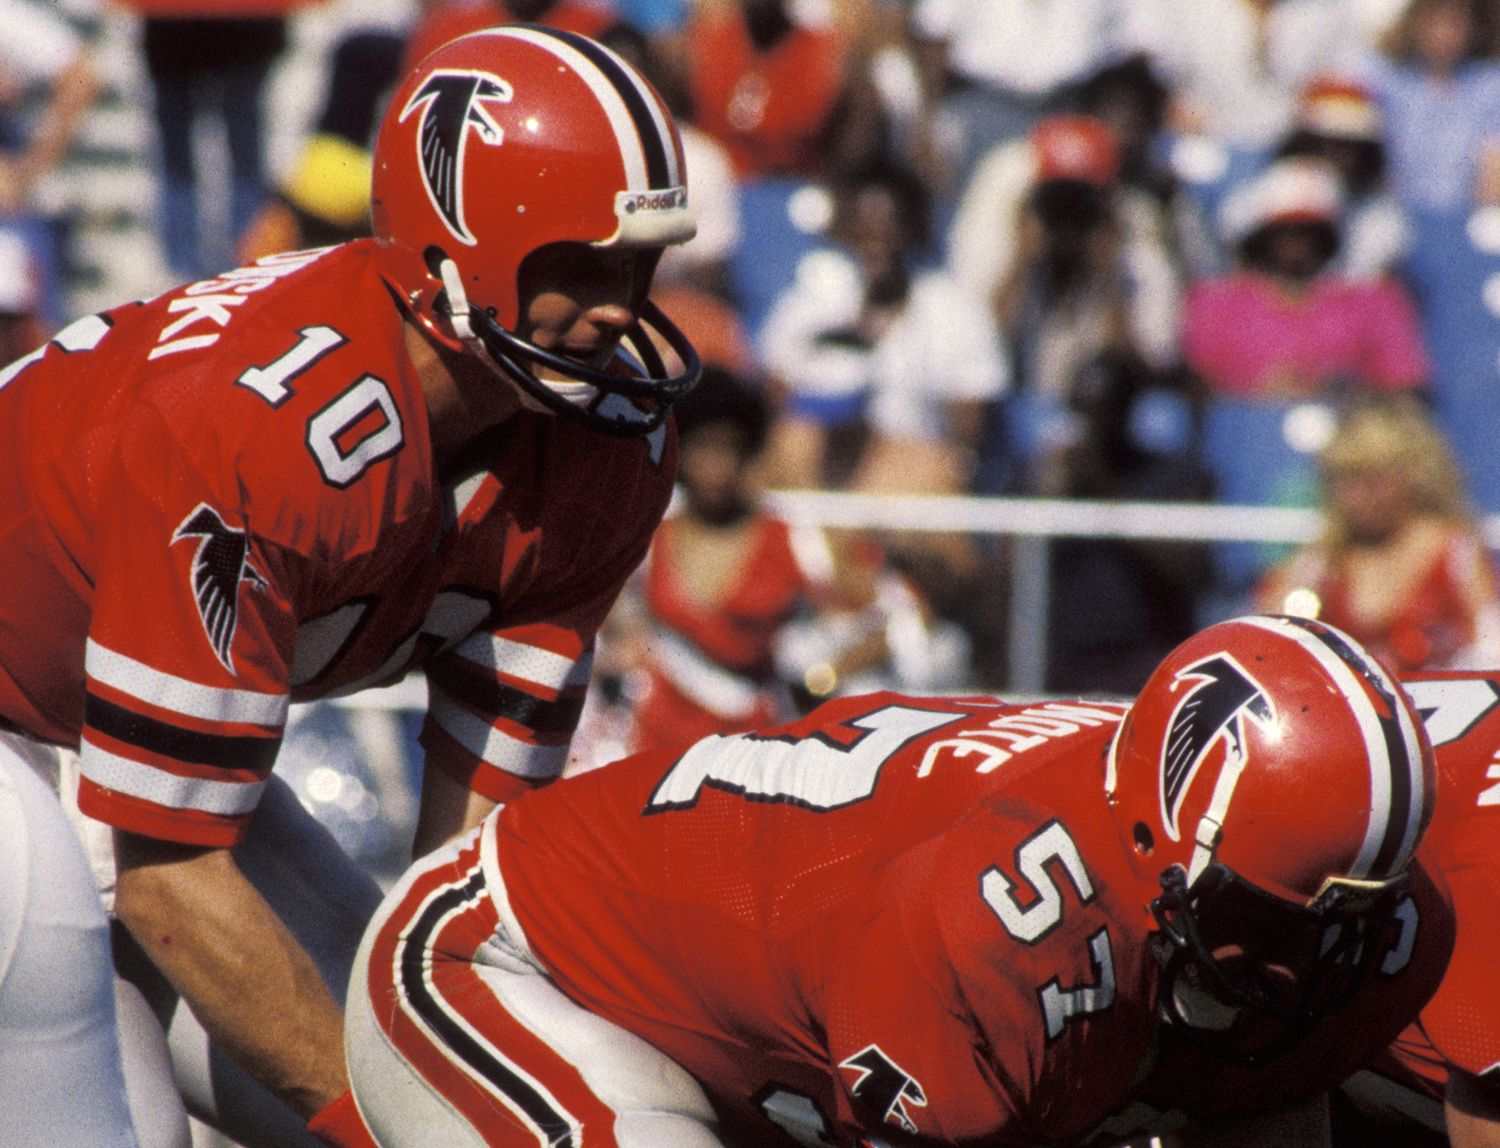 1980 Small Stores In Altanta Google Search Nfl Football Players Nfl Uniforms Falcons Football